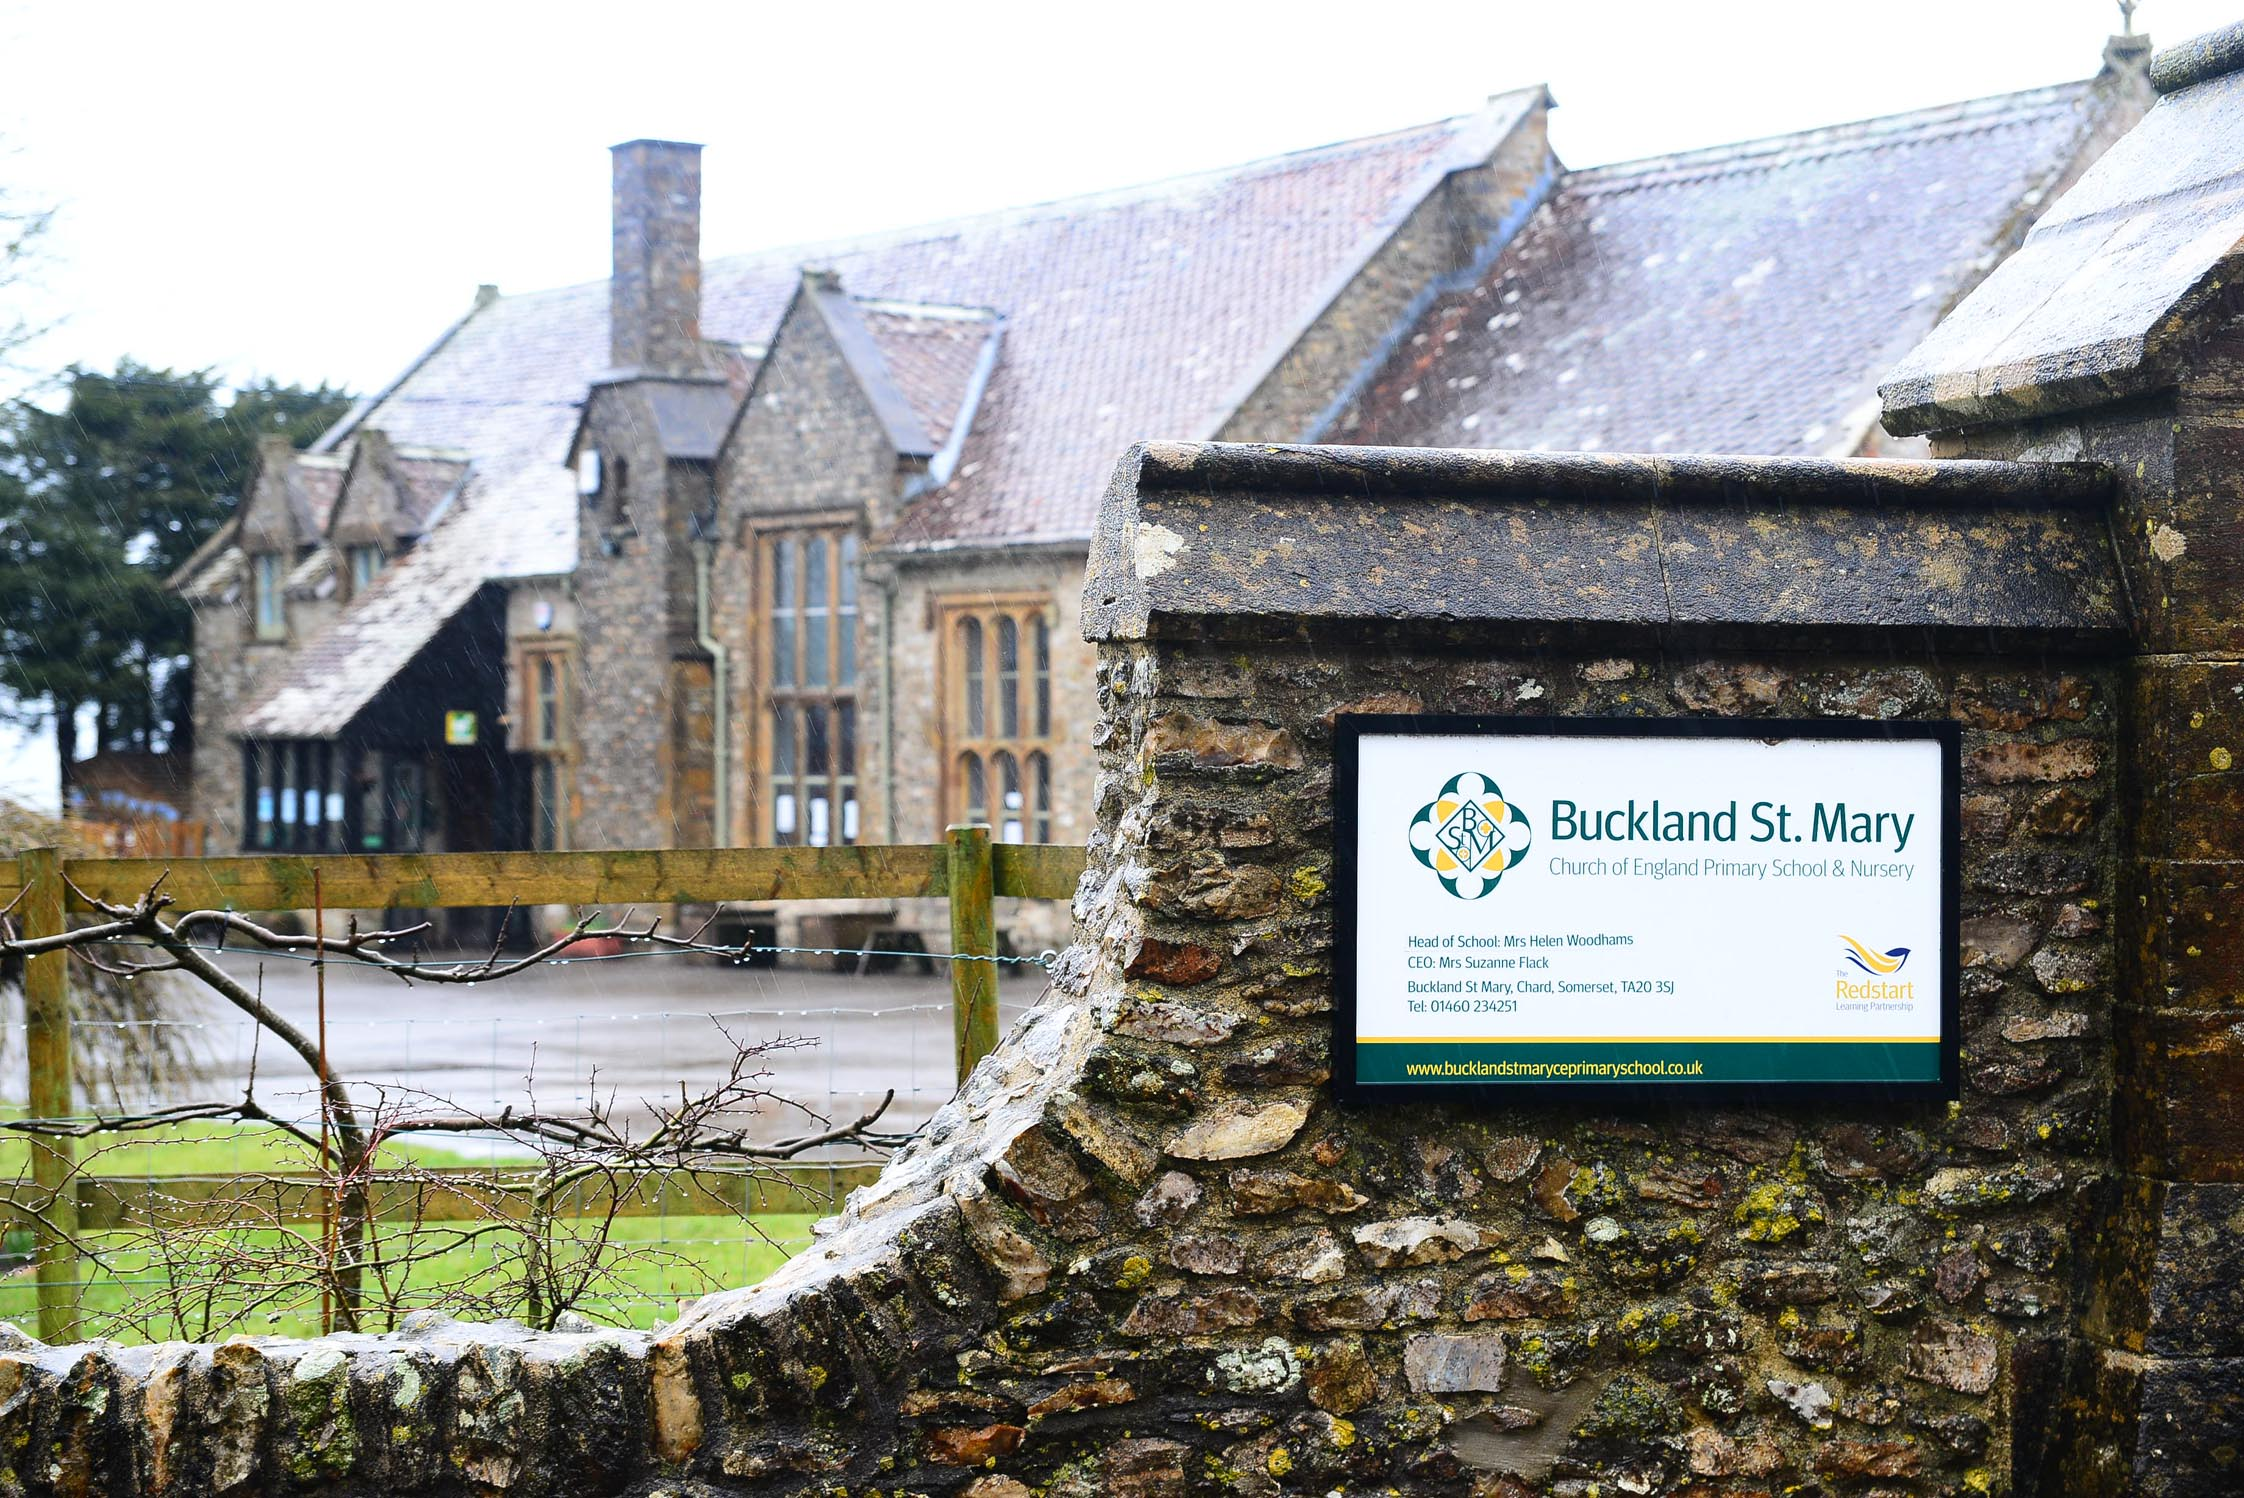 Buckland St Mary School 'requires improvement' after latest Ofsted report